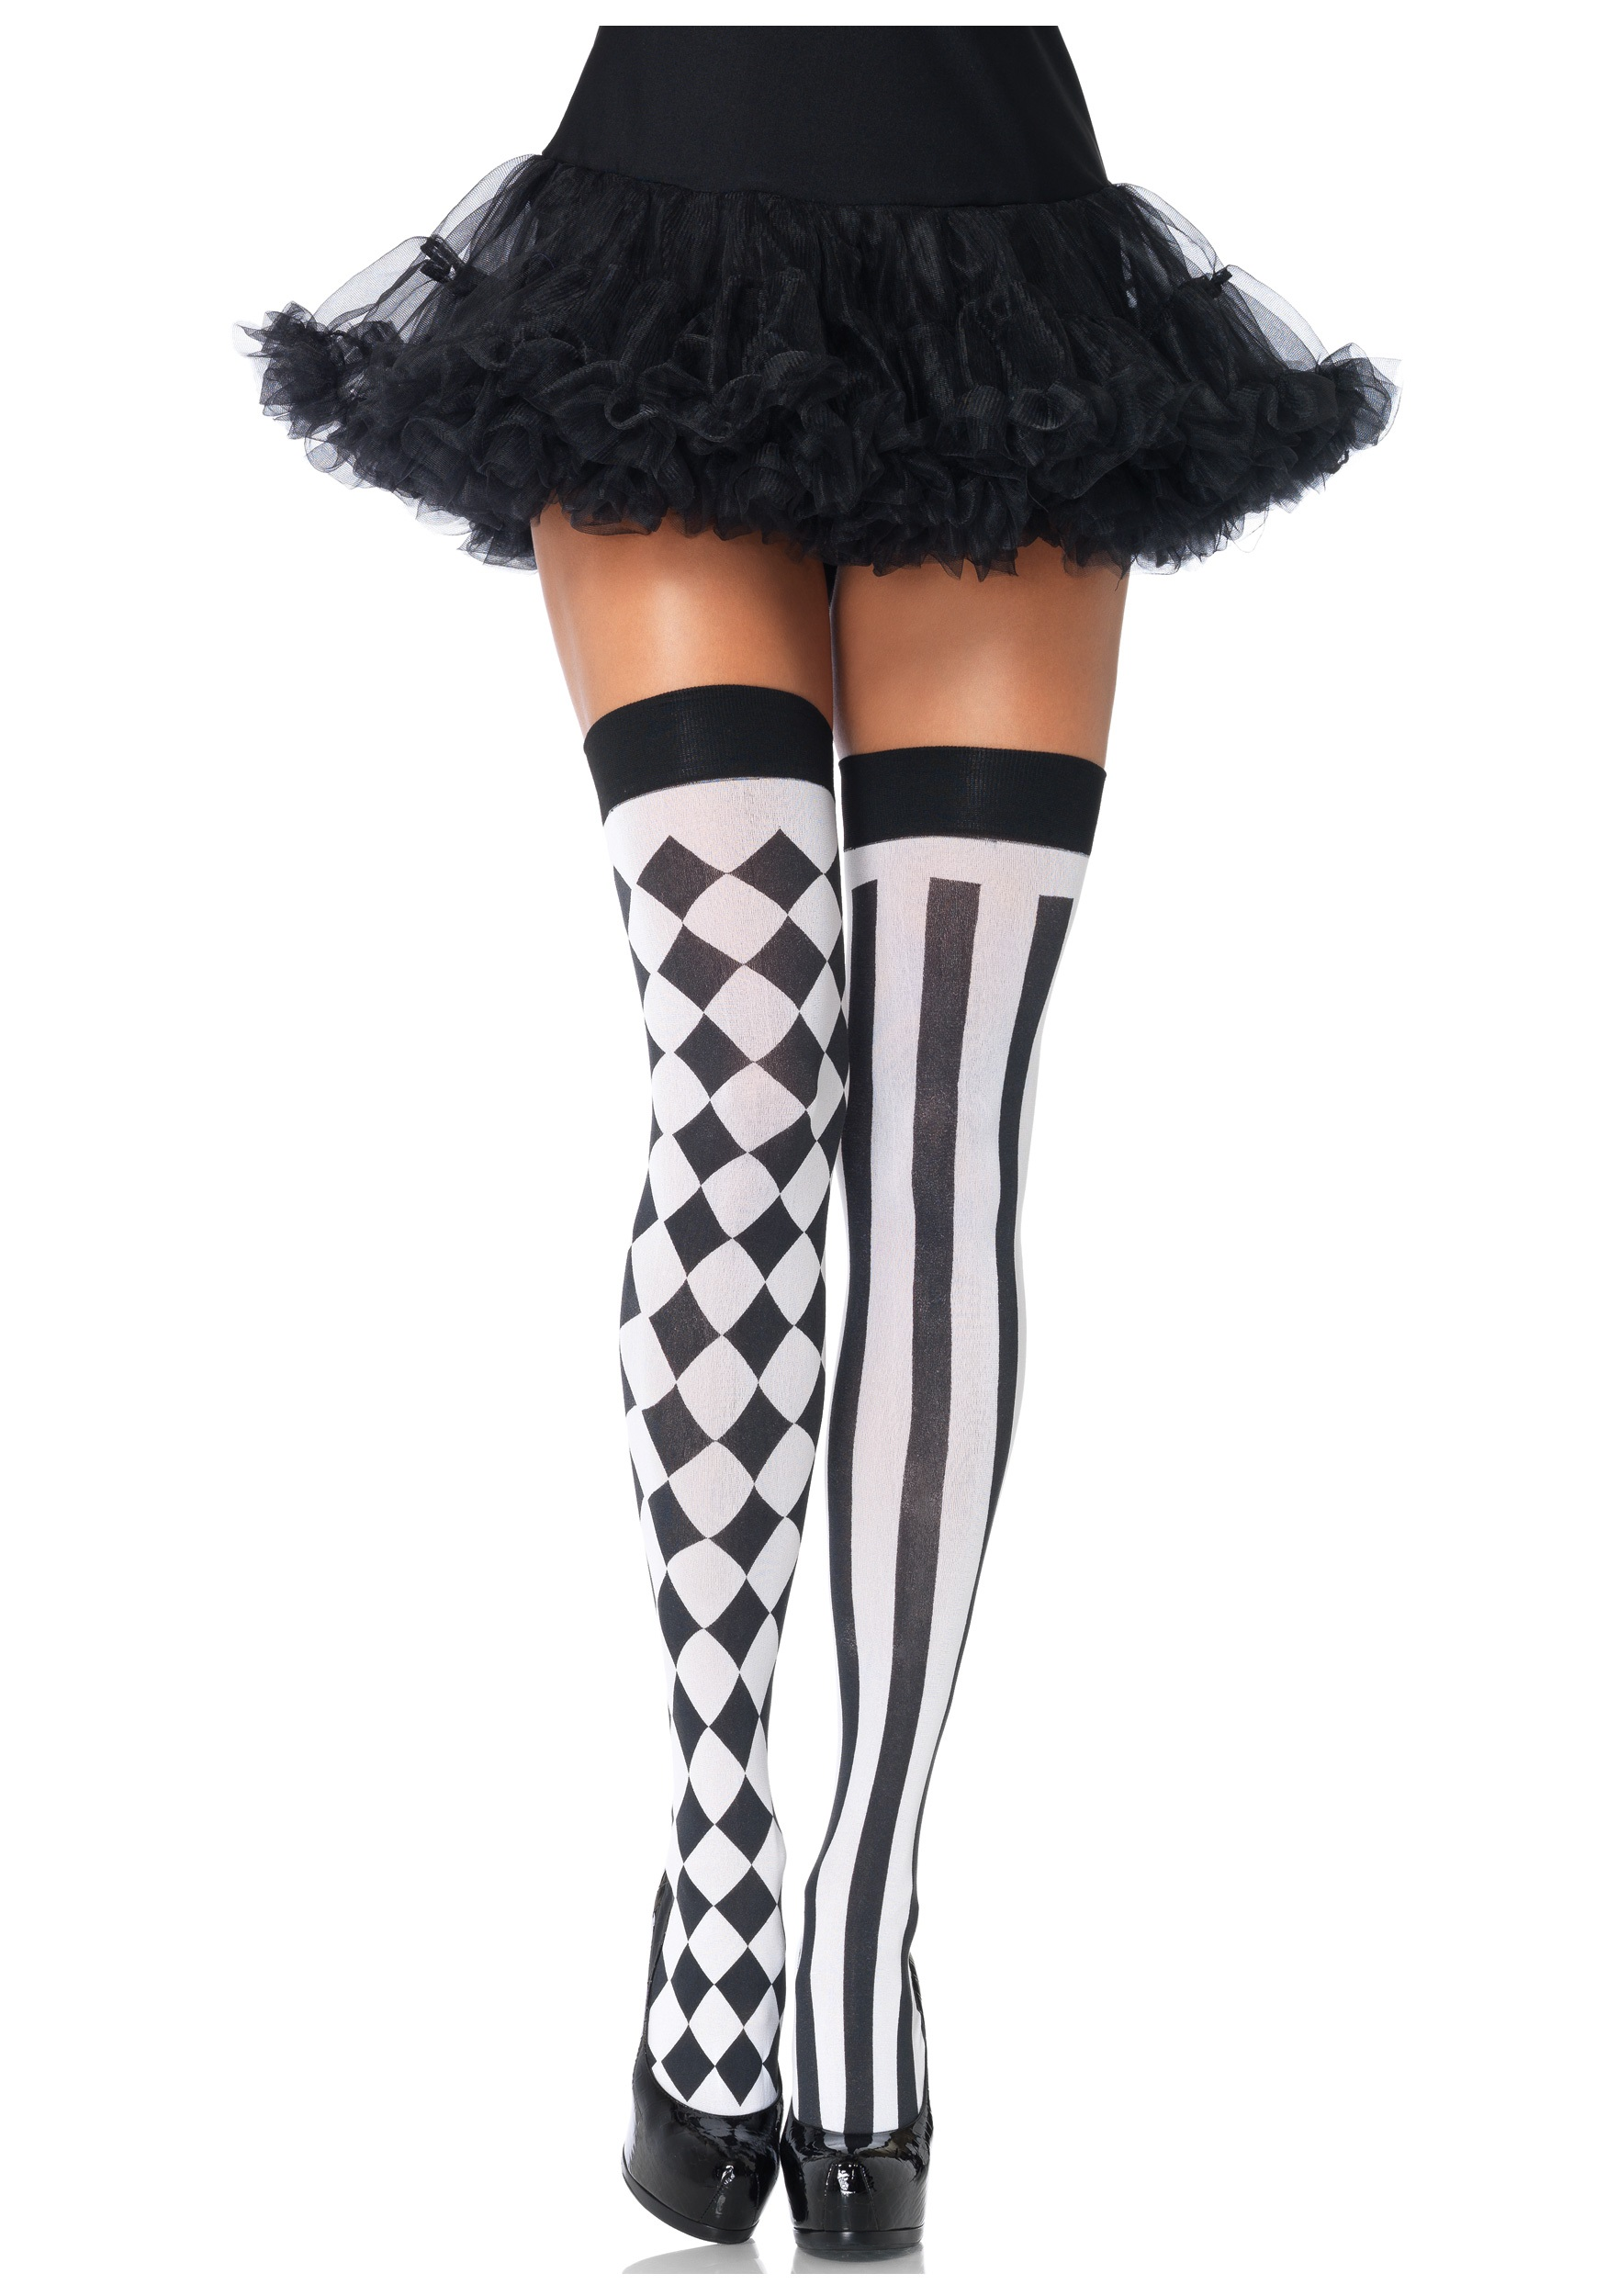 b274d1d69 Harlequin Thigh High Stockings - Sexy Harlequin Costume Accessory